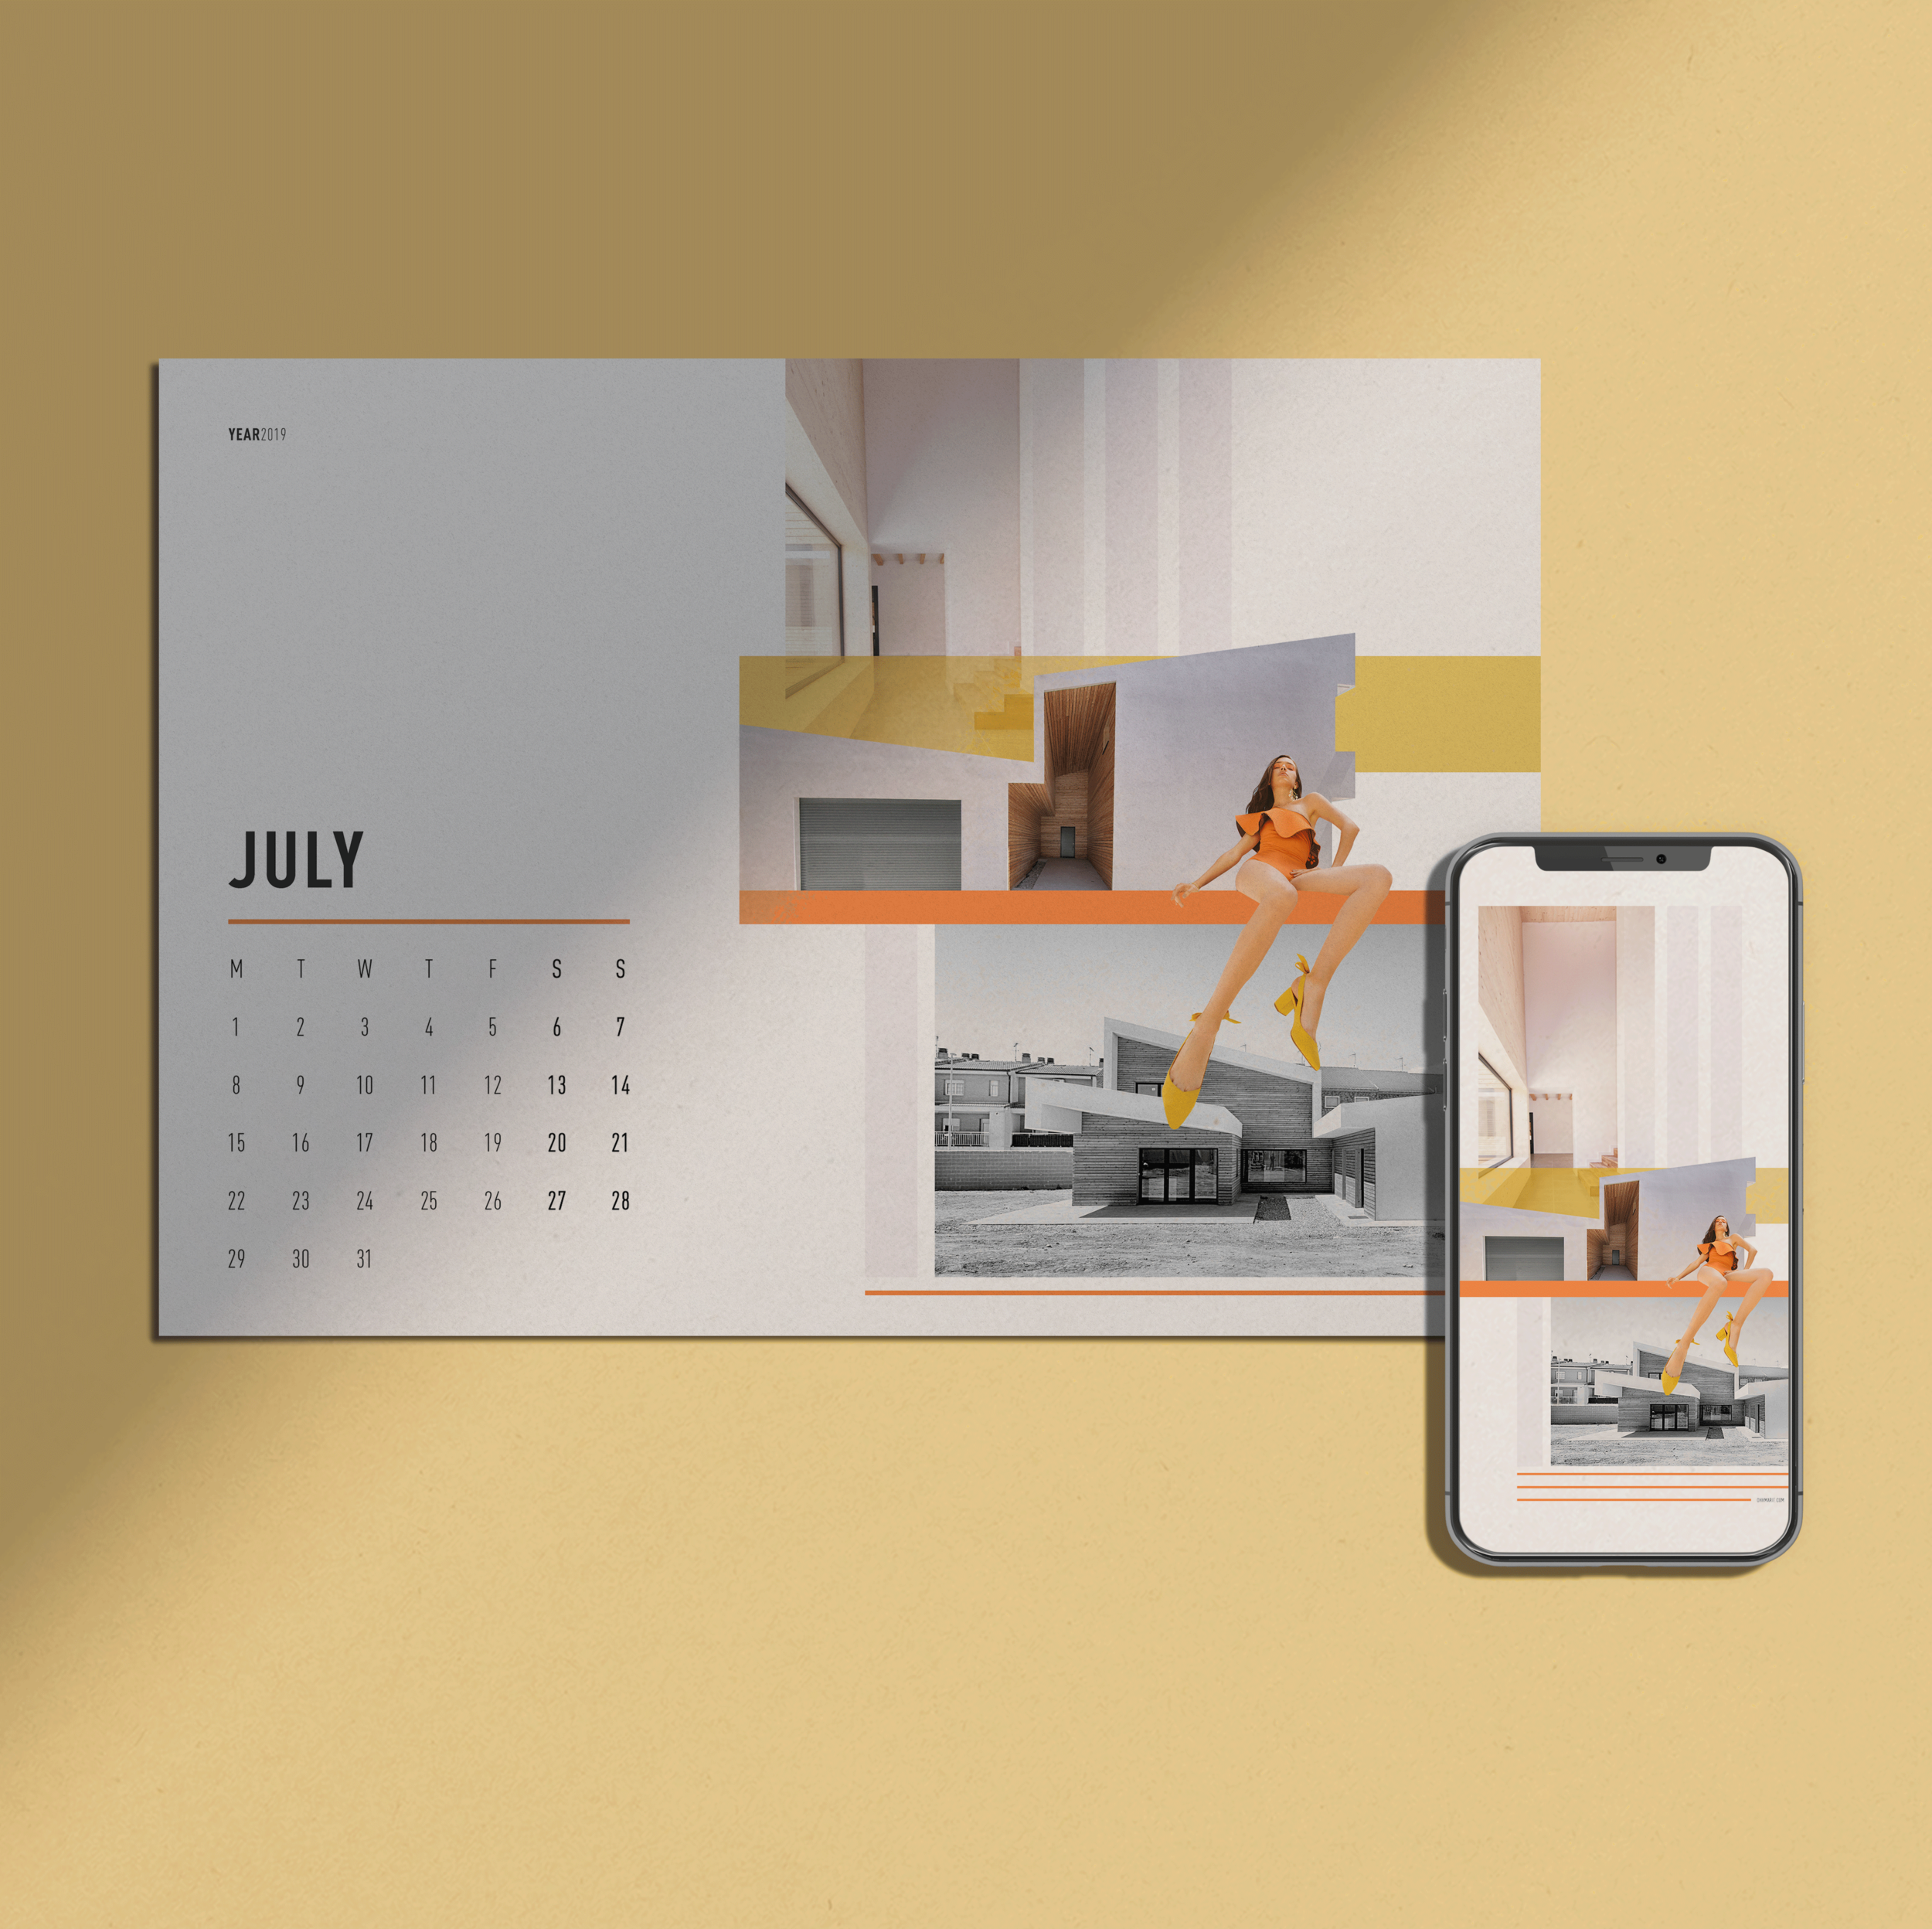 Monthly Calendar + Wallpaper /  JULY 2019    FREE DOWNLOAD